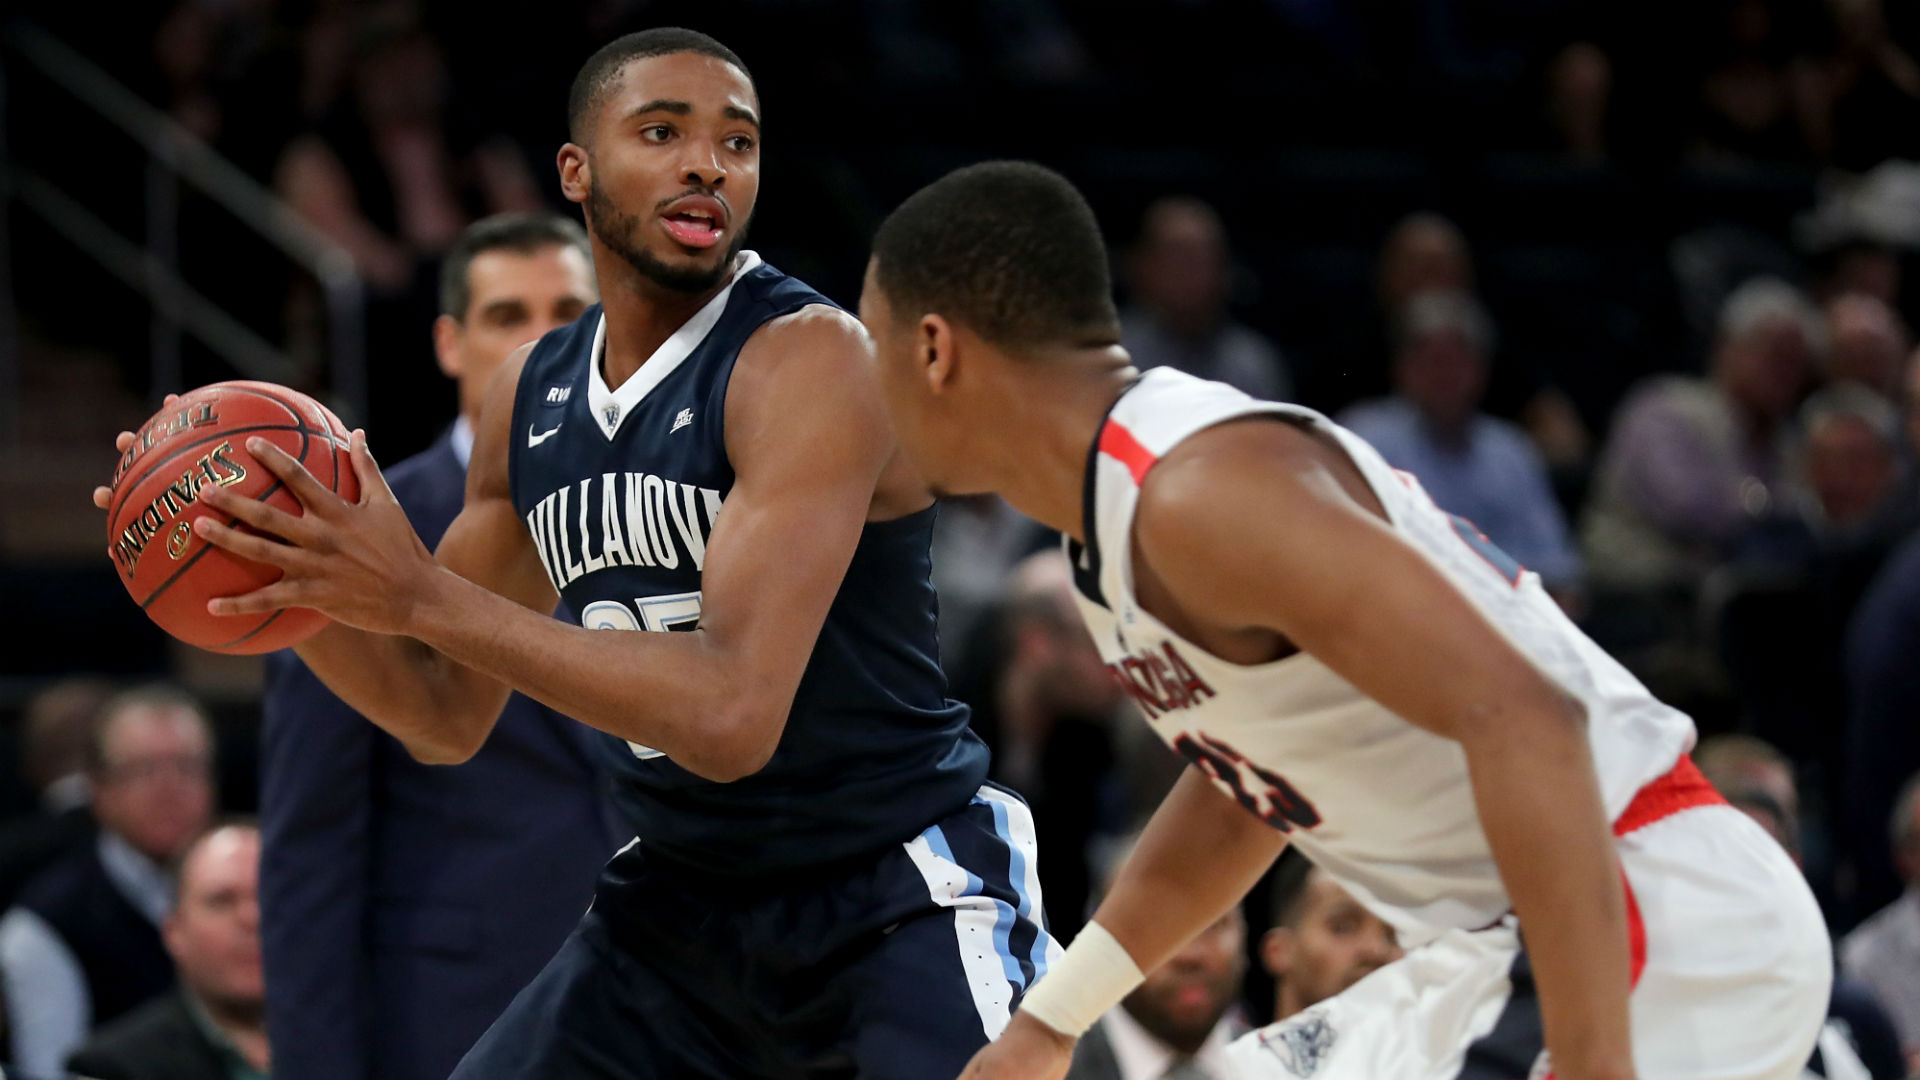 mikal-bridges-villanova-120517-getty-ftr